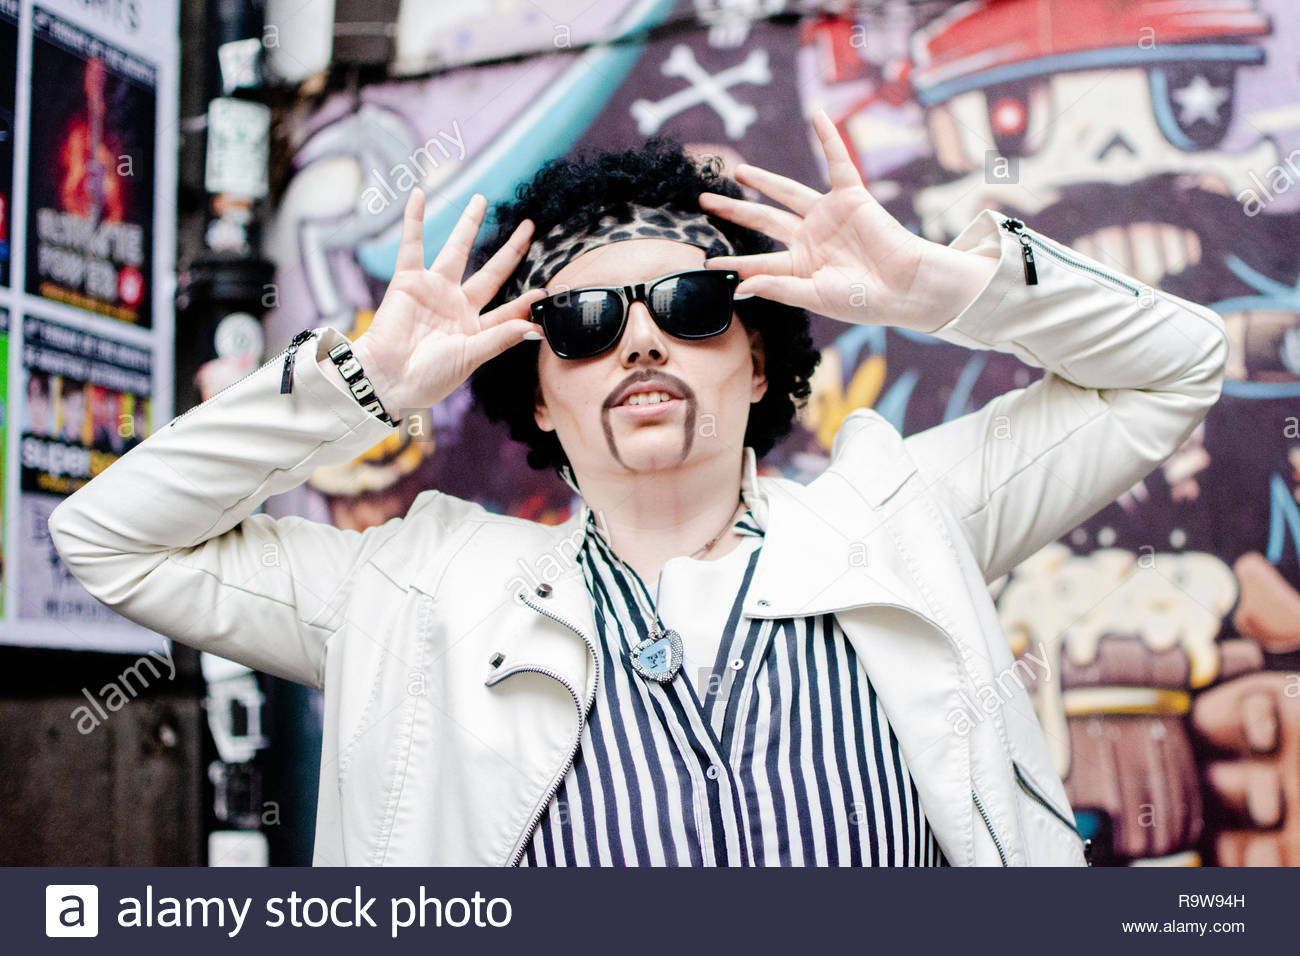 Justin Hawkins - Live @ The Fleece. - Stock Image